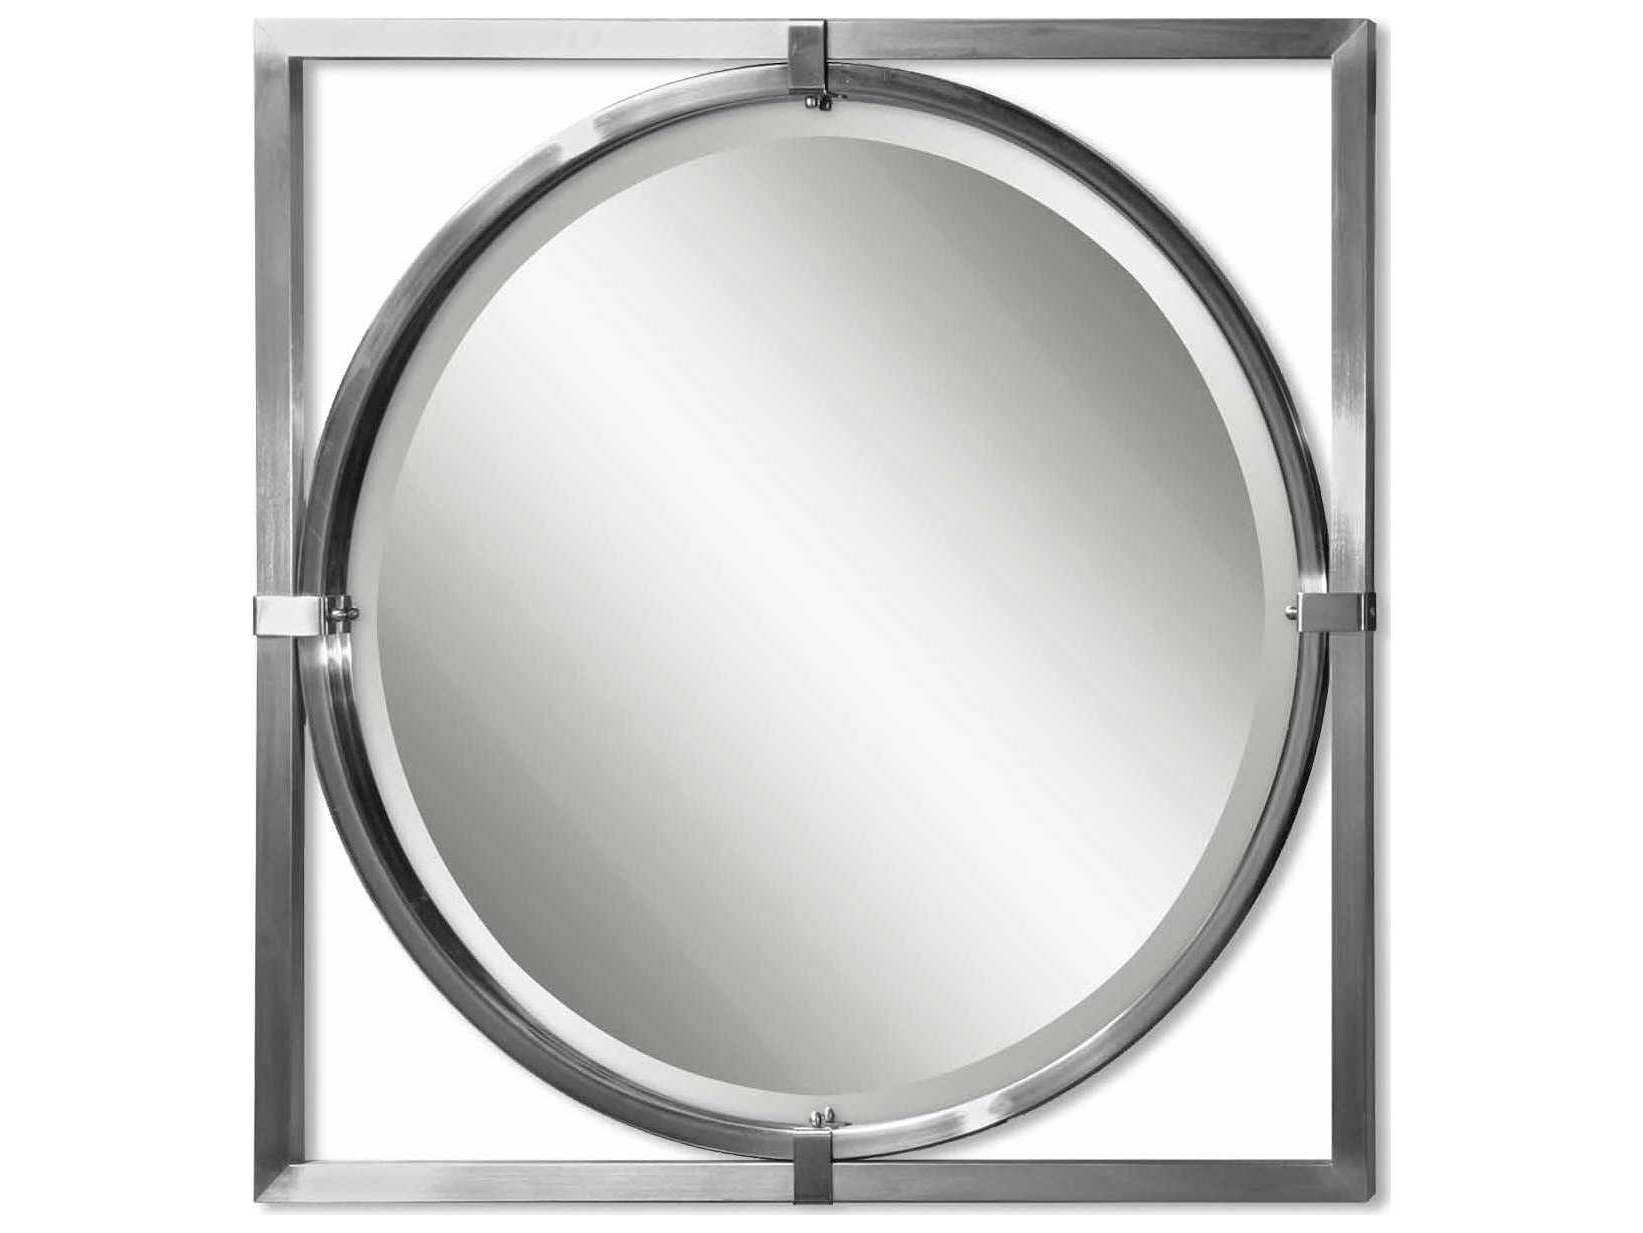 Uttermost Kagami 30 X 30 Brushed Nickel Wall Mirror Inside Well Liked Brushed Nickel Wall Mirrors (Gallery 6 of 14)